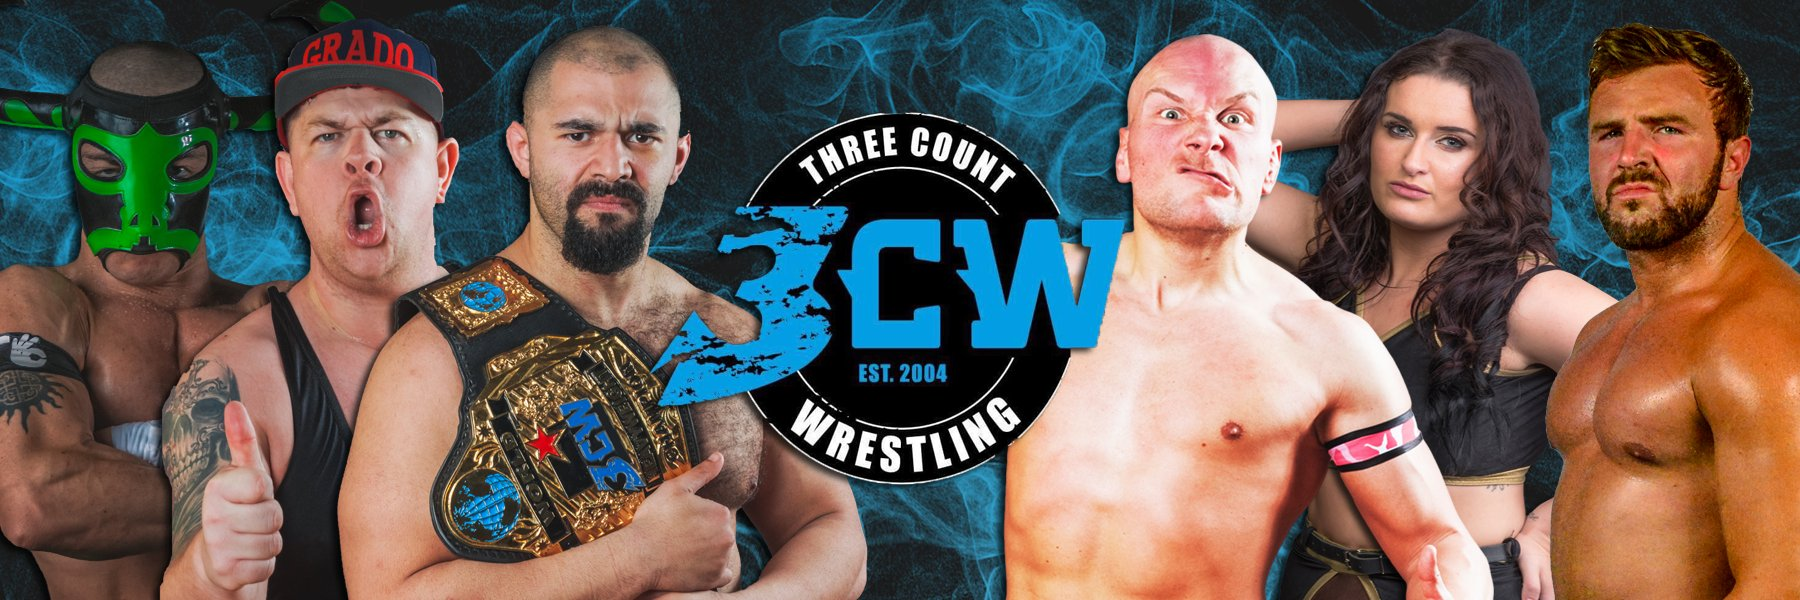 Explore some of the UK's finest action from 3CW